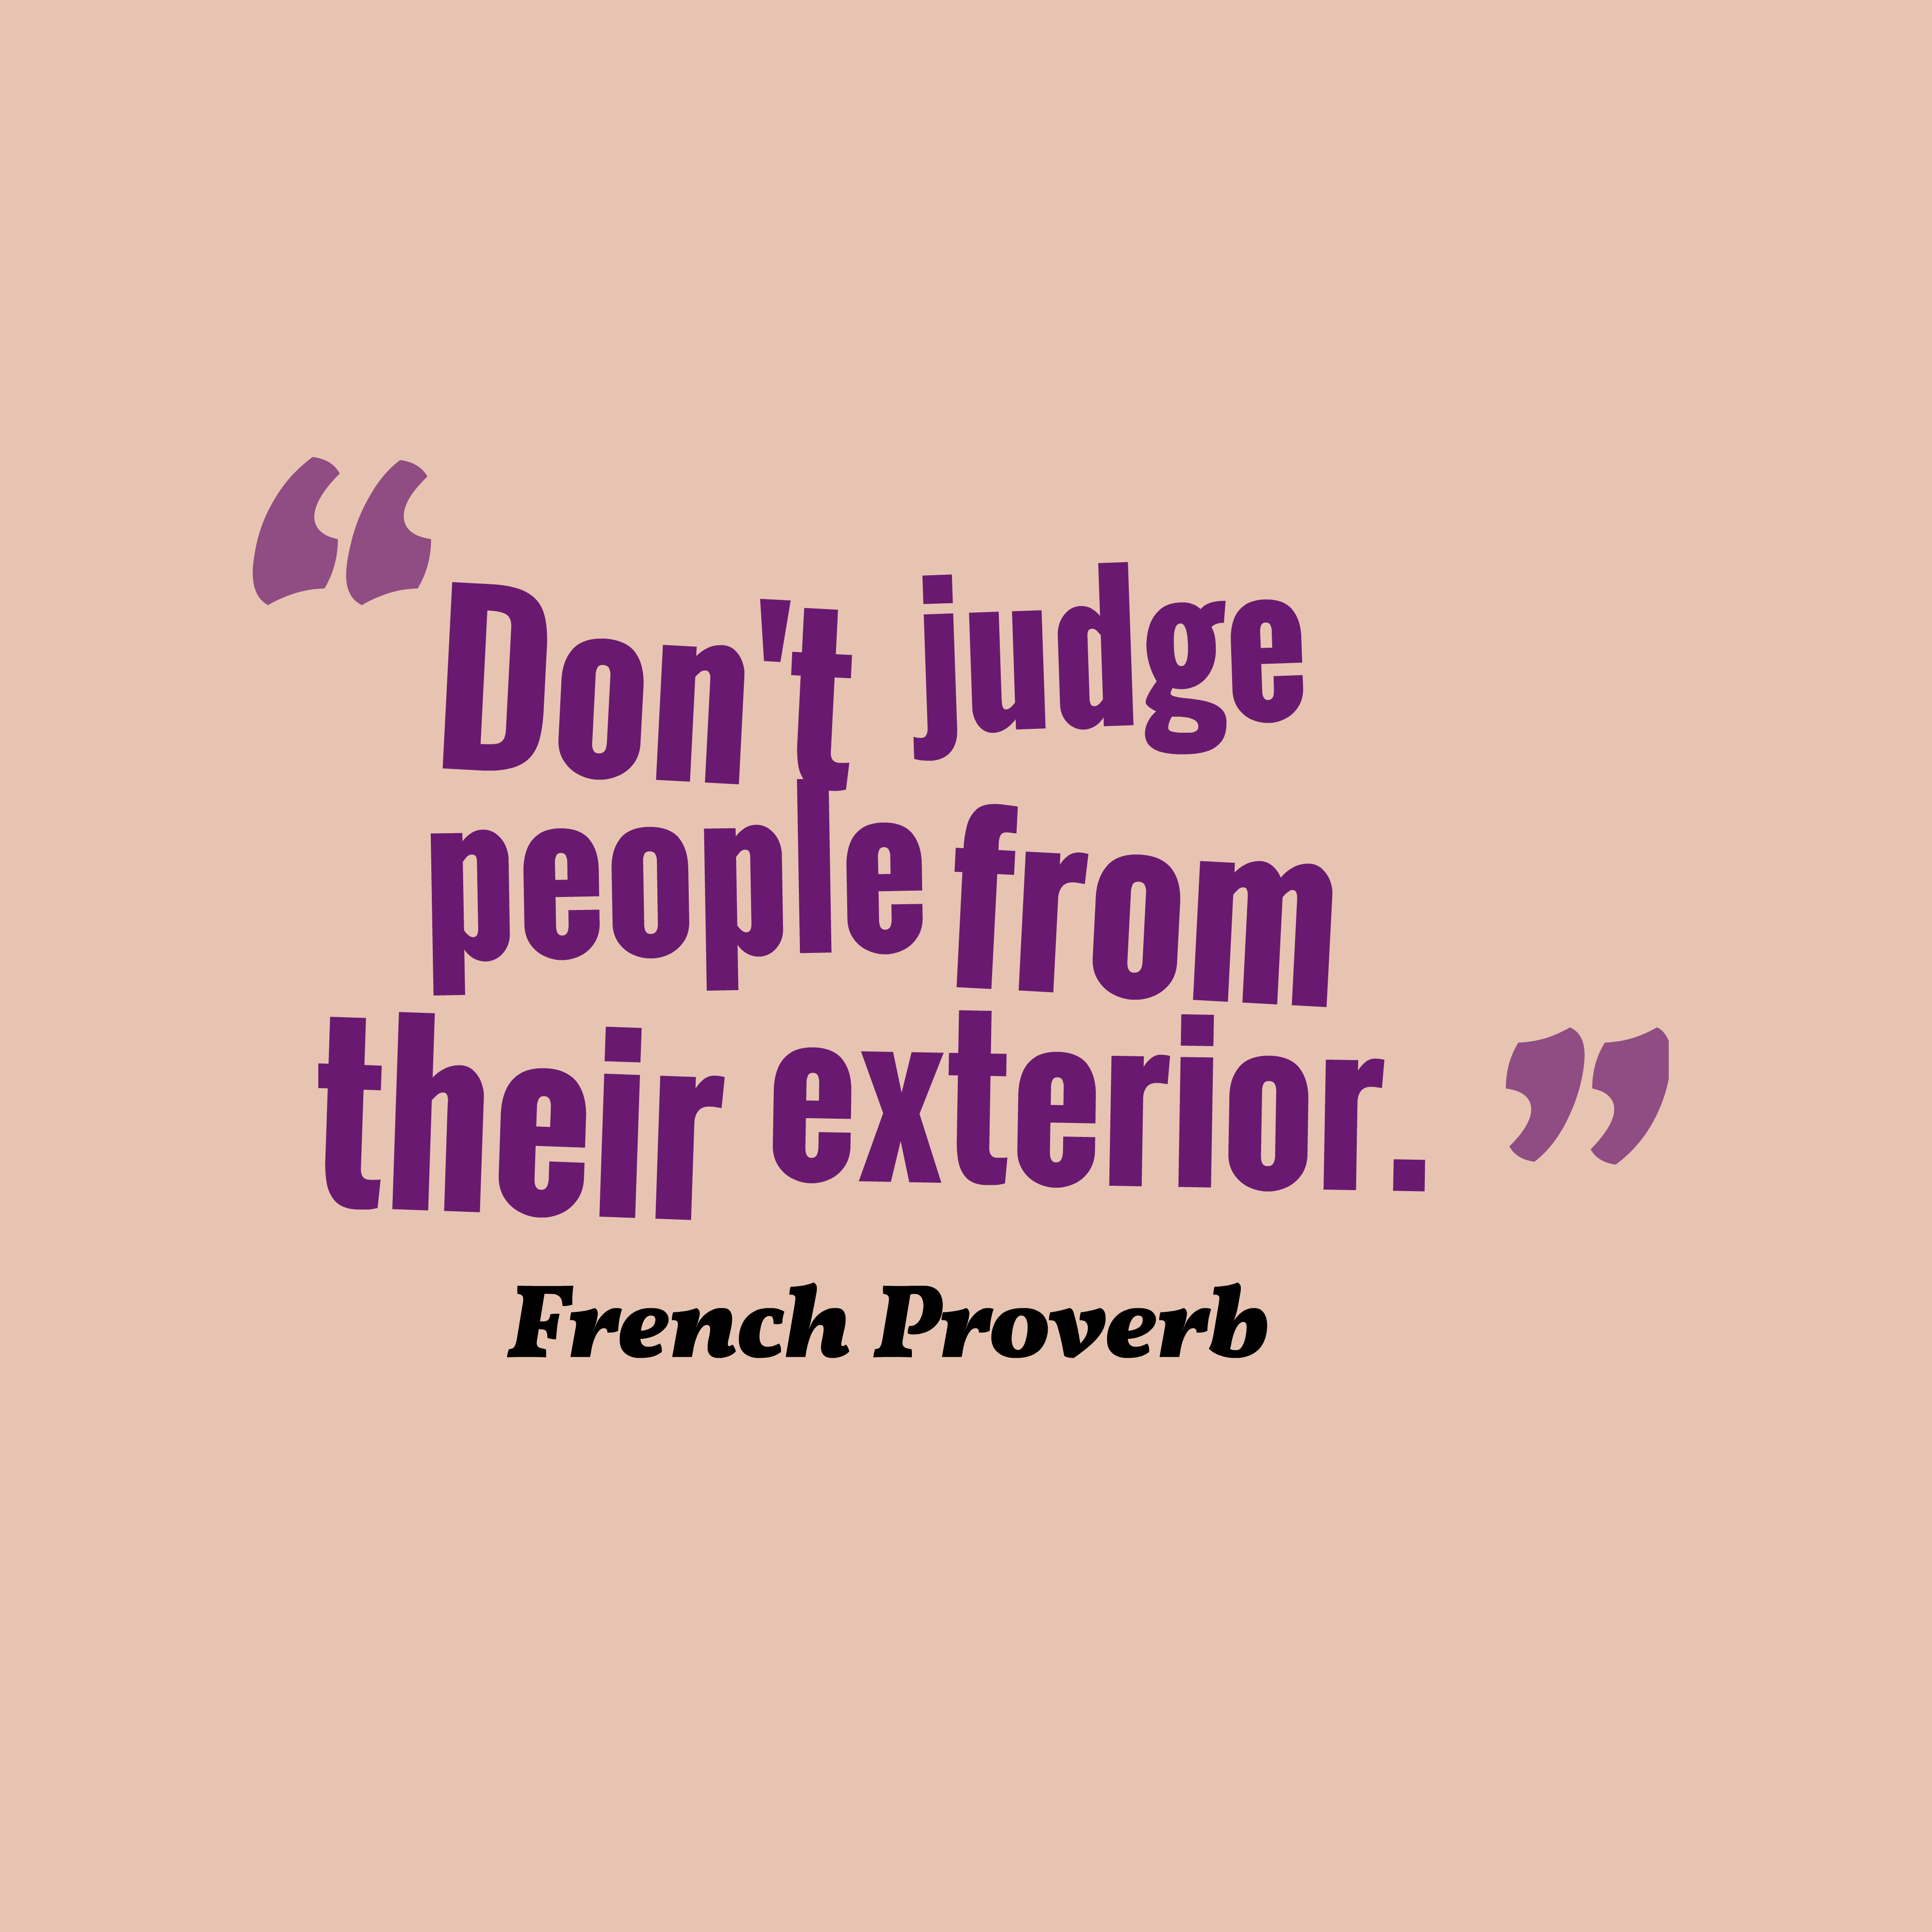 French Proverb About People